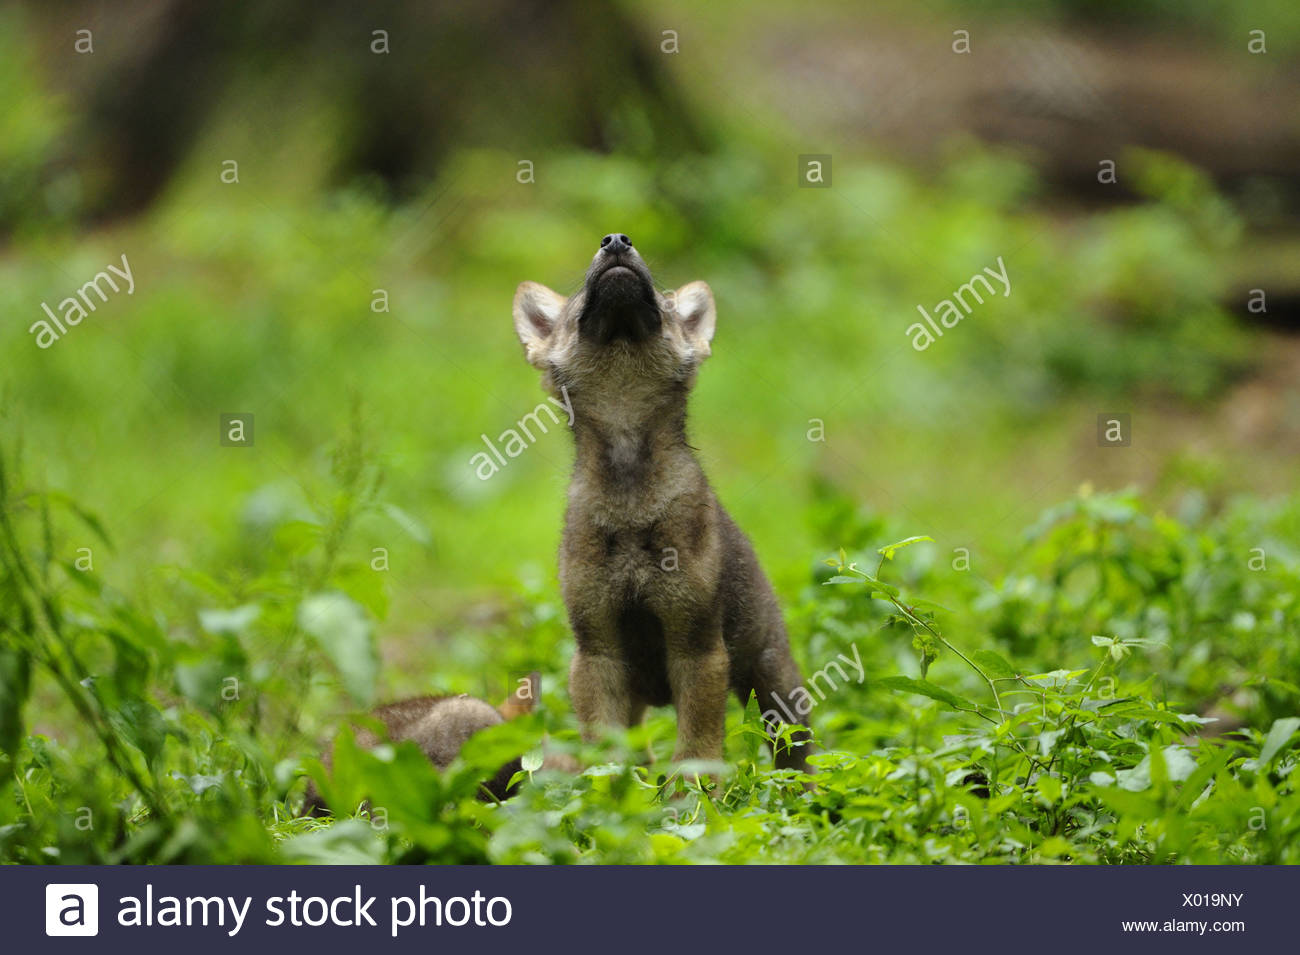 European gray wolf (Canis lupus lupus), howling wolf cub standing in meadow, Germany, Bavaria, Bavarian Forest National Park - Stock Image